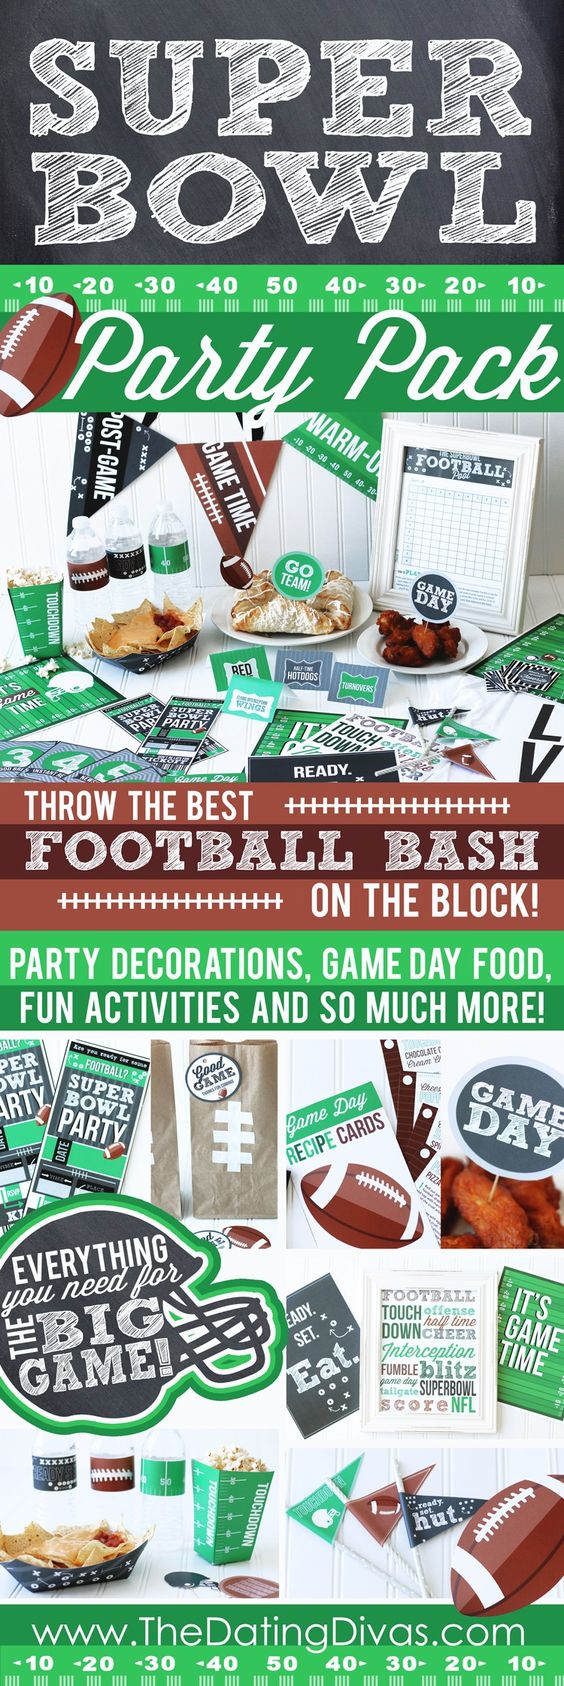 Football is a BIG deal at my house! My whole family would just go nuts over this Super Bowl Party Pack! SO fun!! www.TheDatingDivas.com